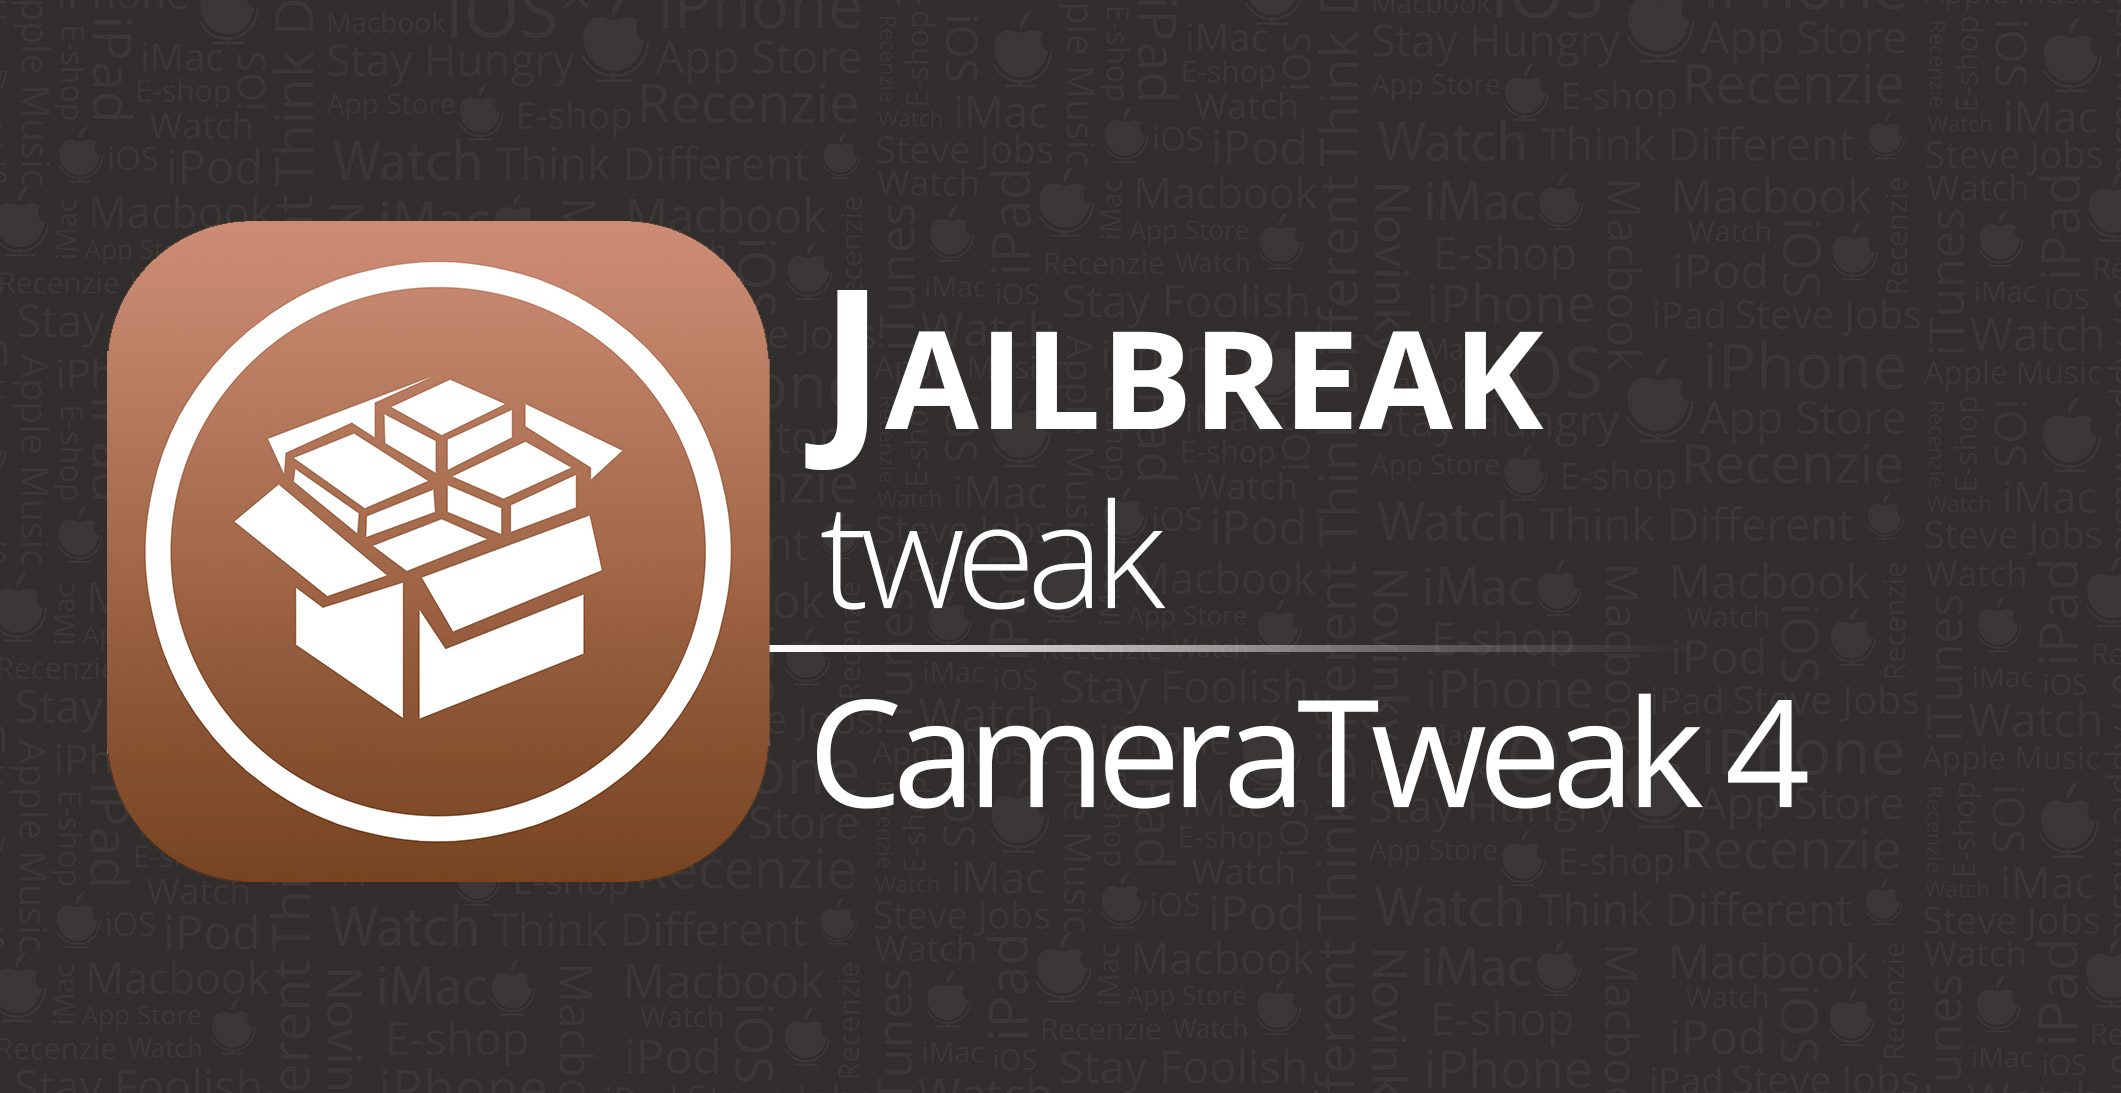 jailbreak-tweak-cameratweeak-4-svetapple